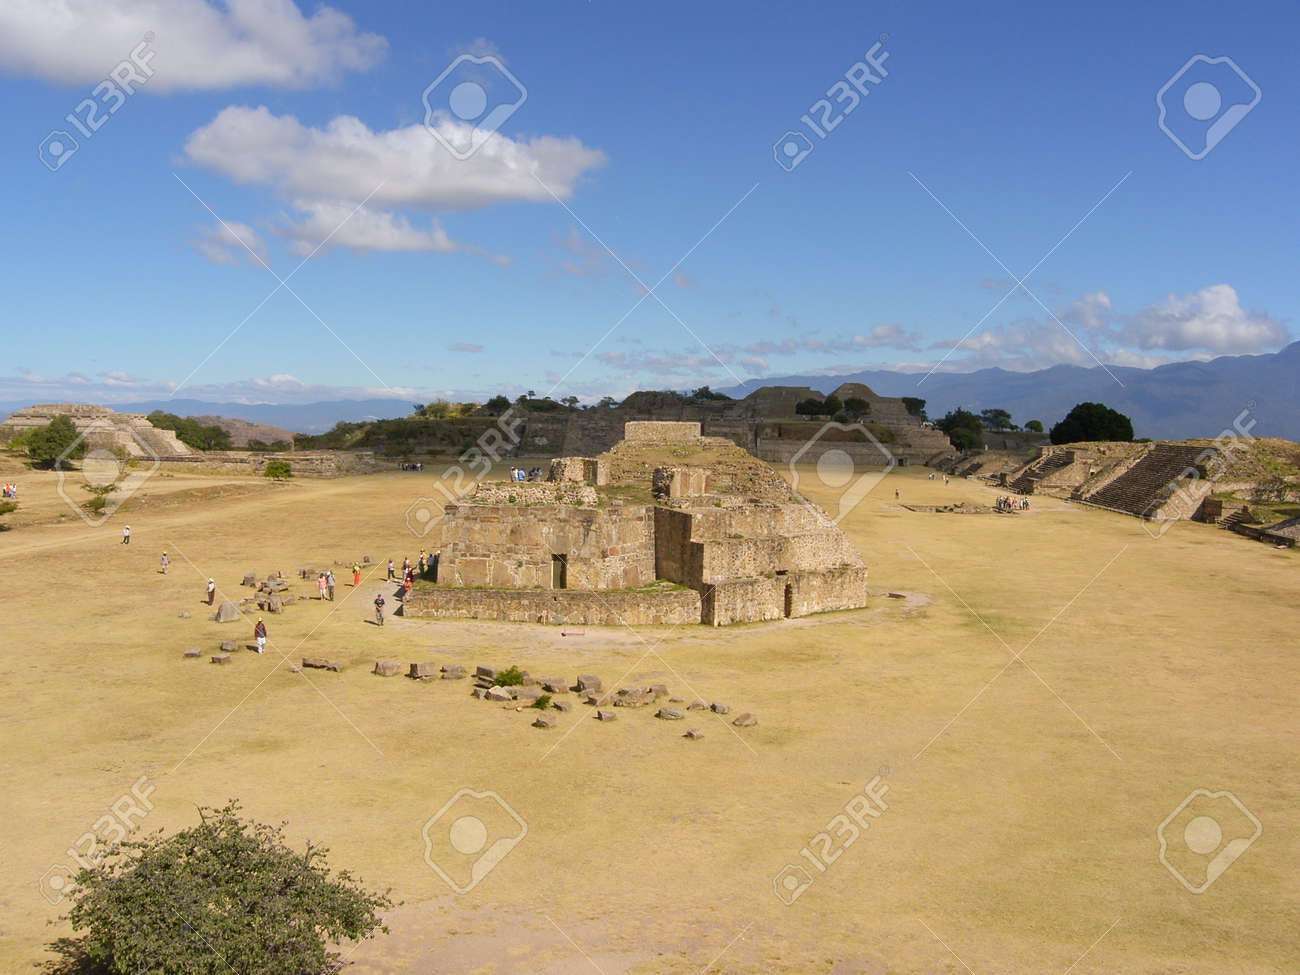 The Ruins of Monte Alban Near Oaxaca are a UNESCO World Heritage Site